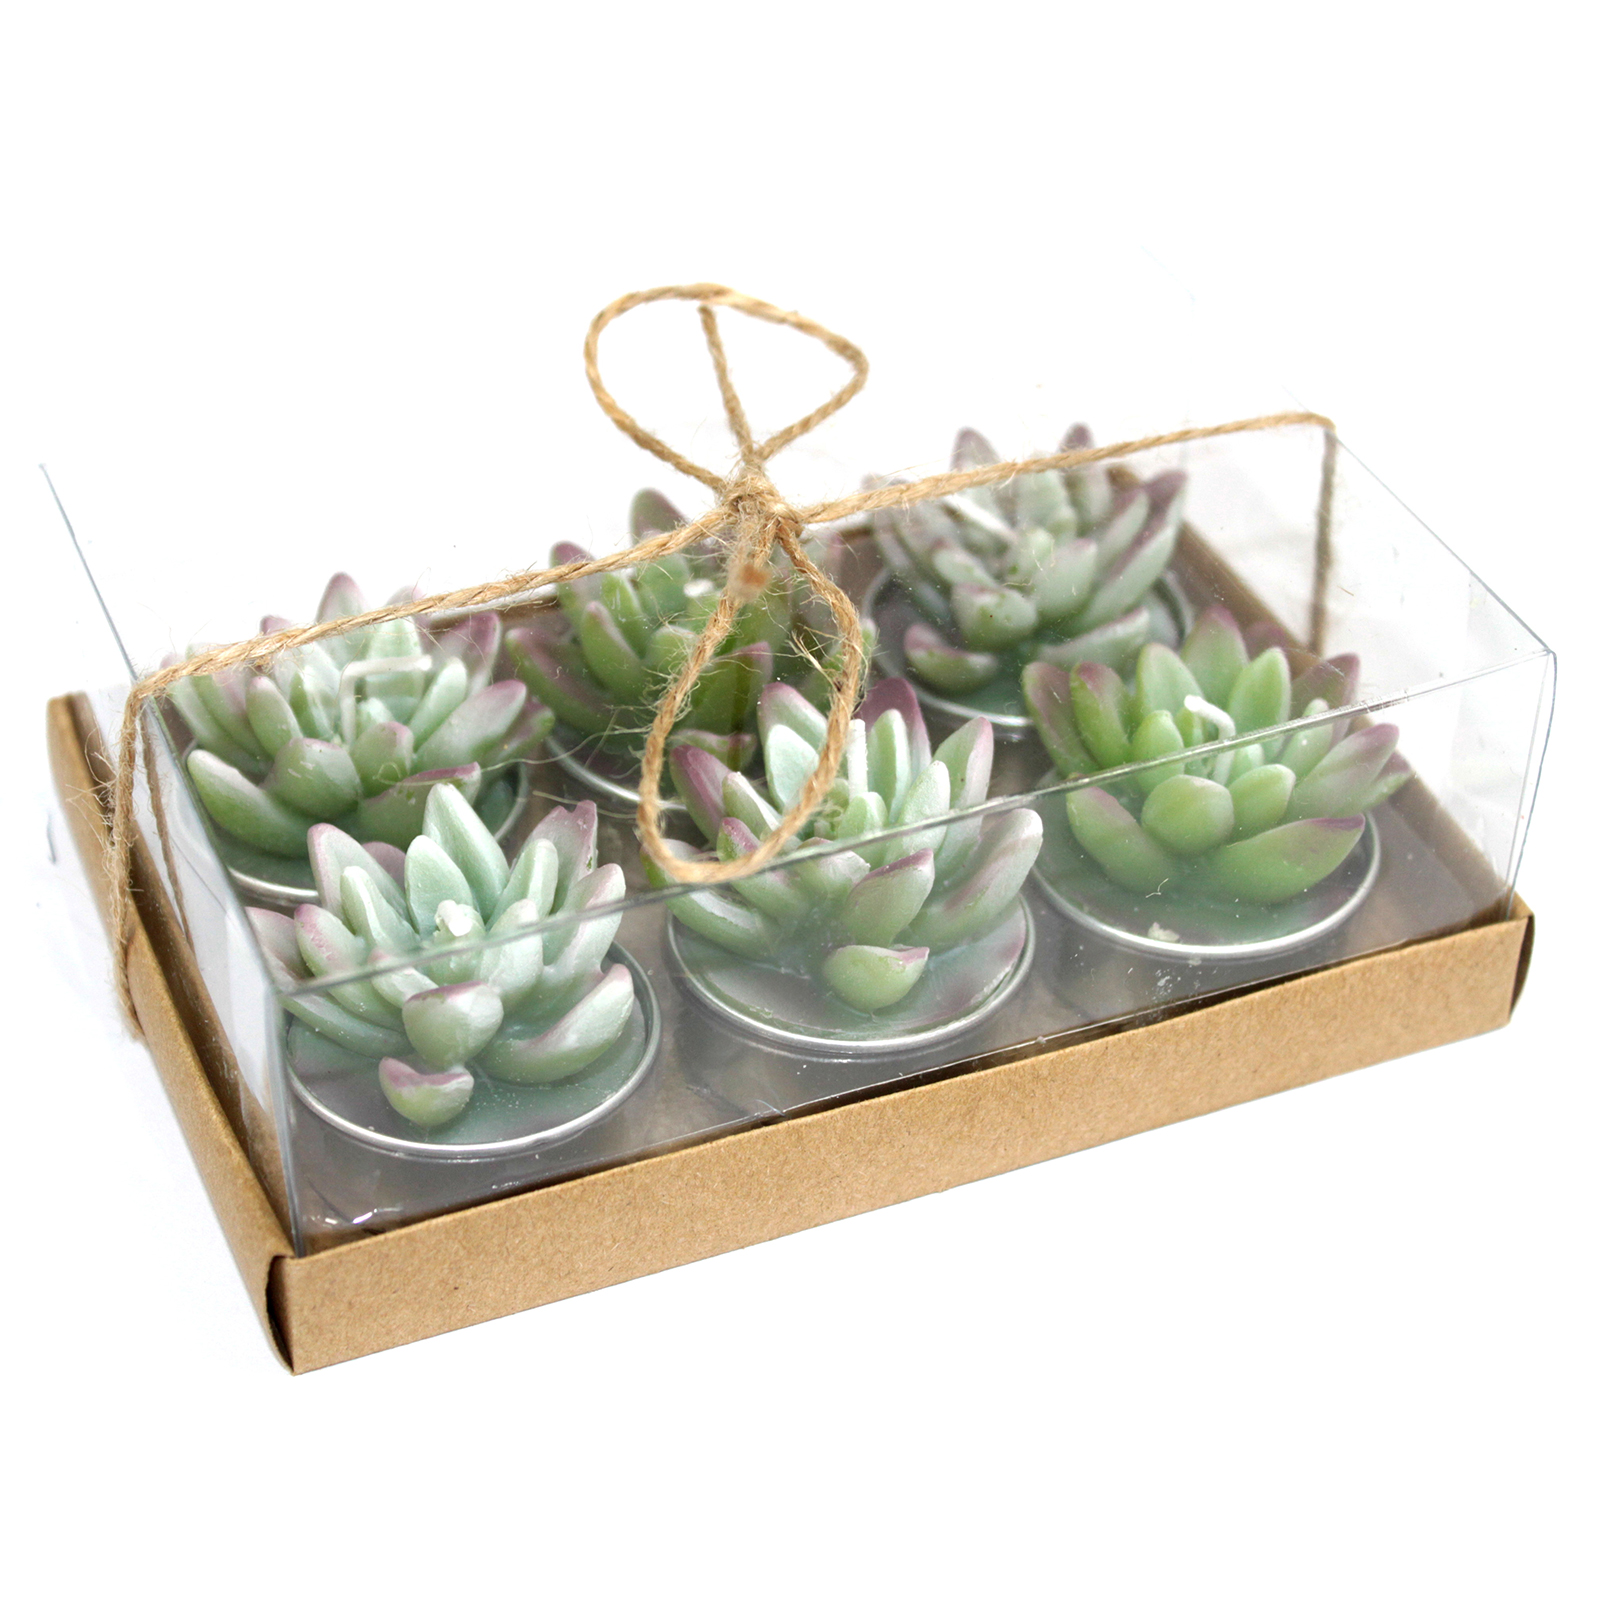 Agave Cactus Tealights in Gift Box